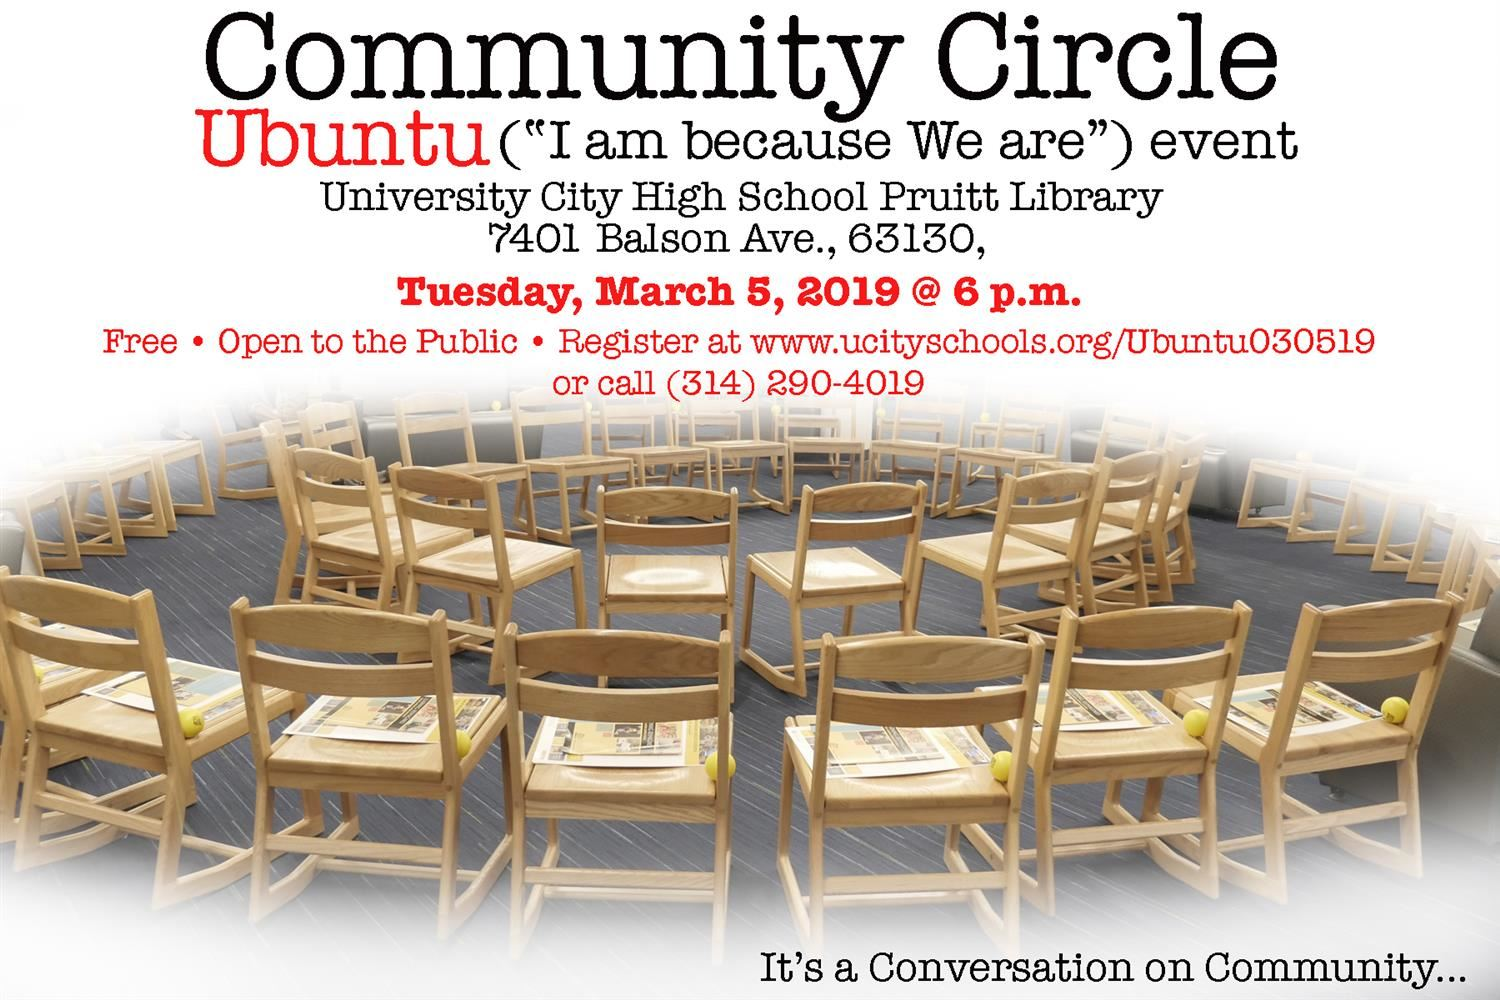 "Ubuntu ""I am because We are"" Community Circle - Rescheduled"